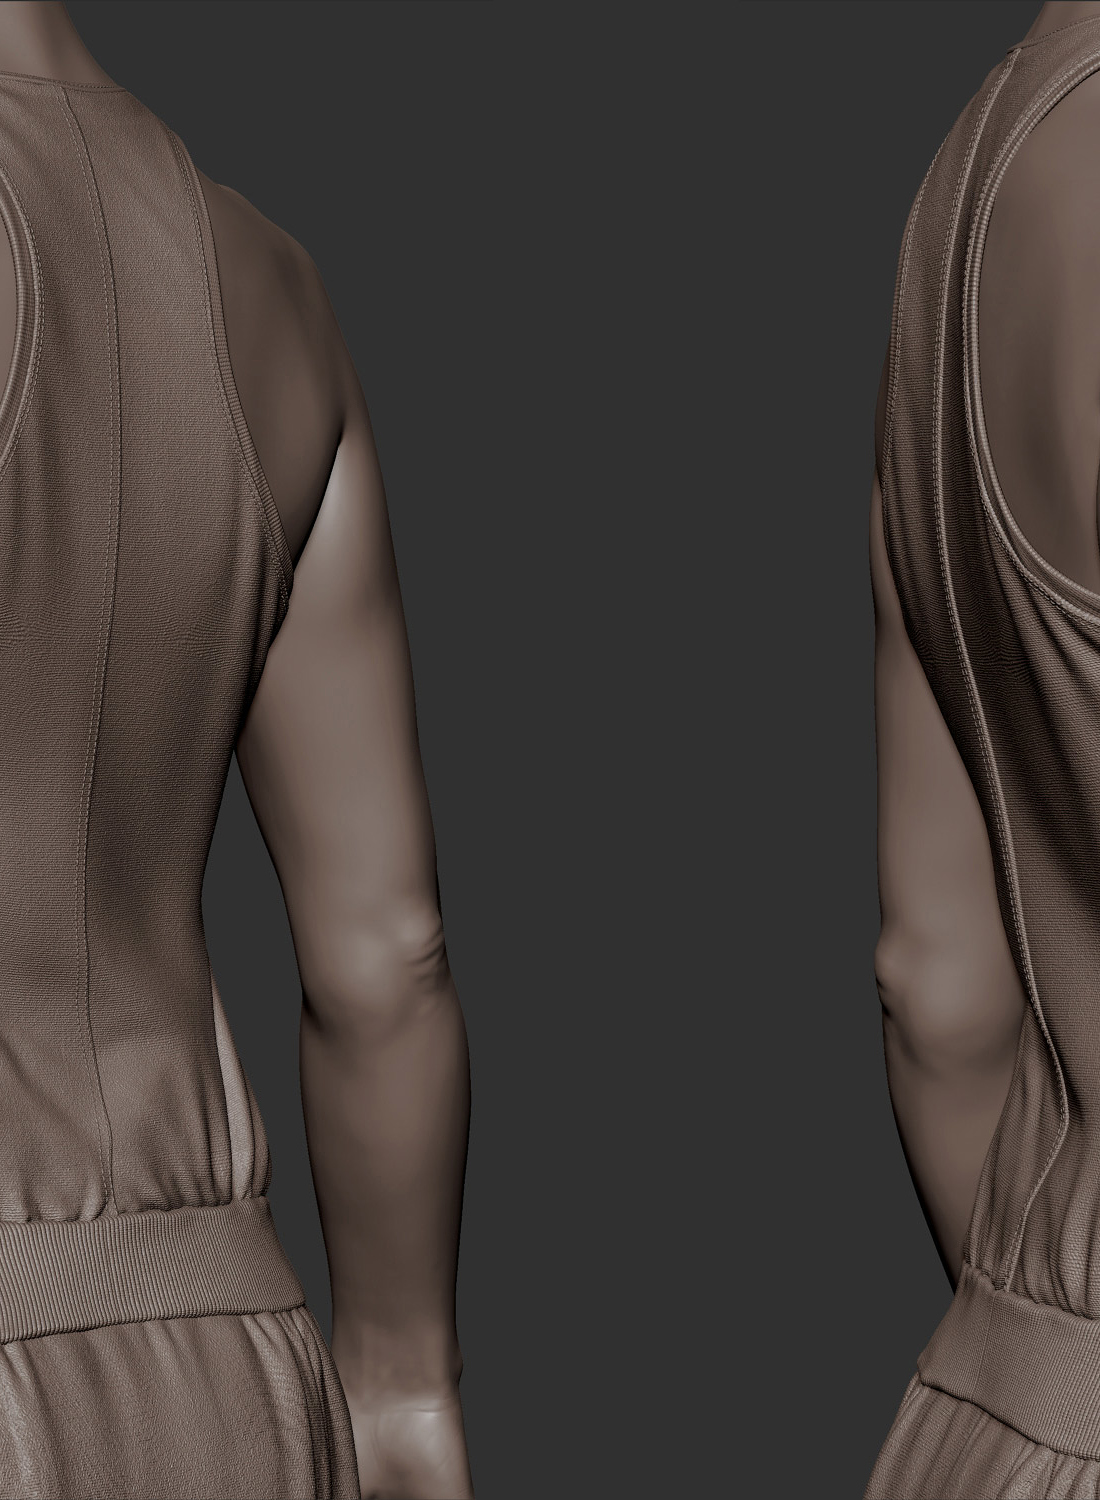 ANATOMY_STUDY_FEMALE_CLOTHING_CLOSE-UPS_3.jpg